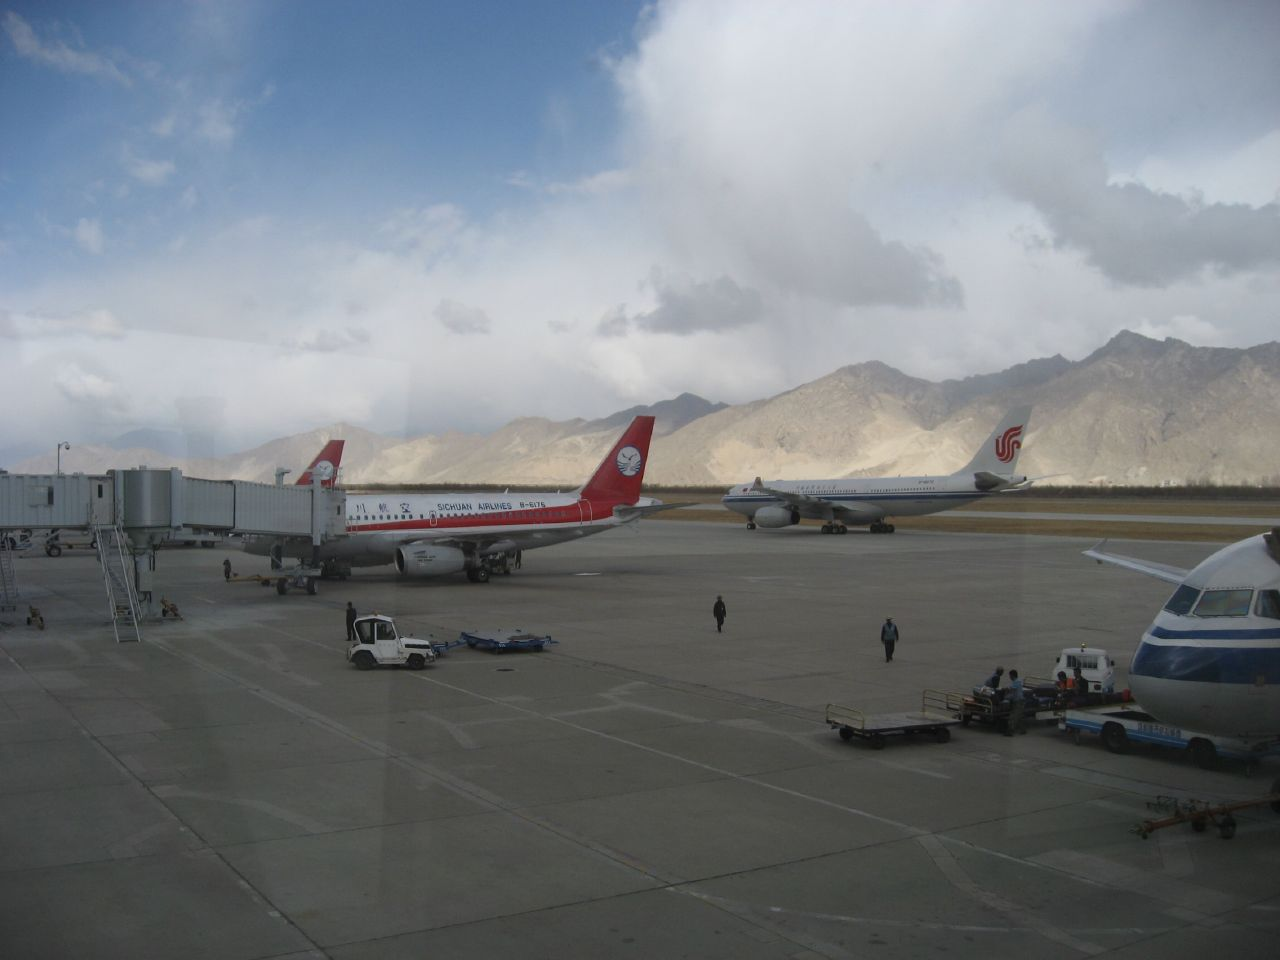 3,500 meters above sea level - Lhasa Gonggar Airport